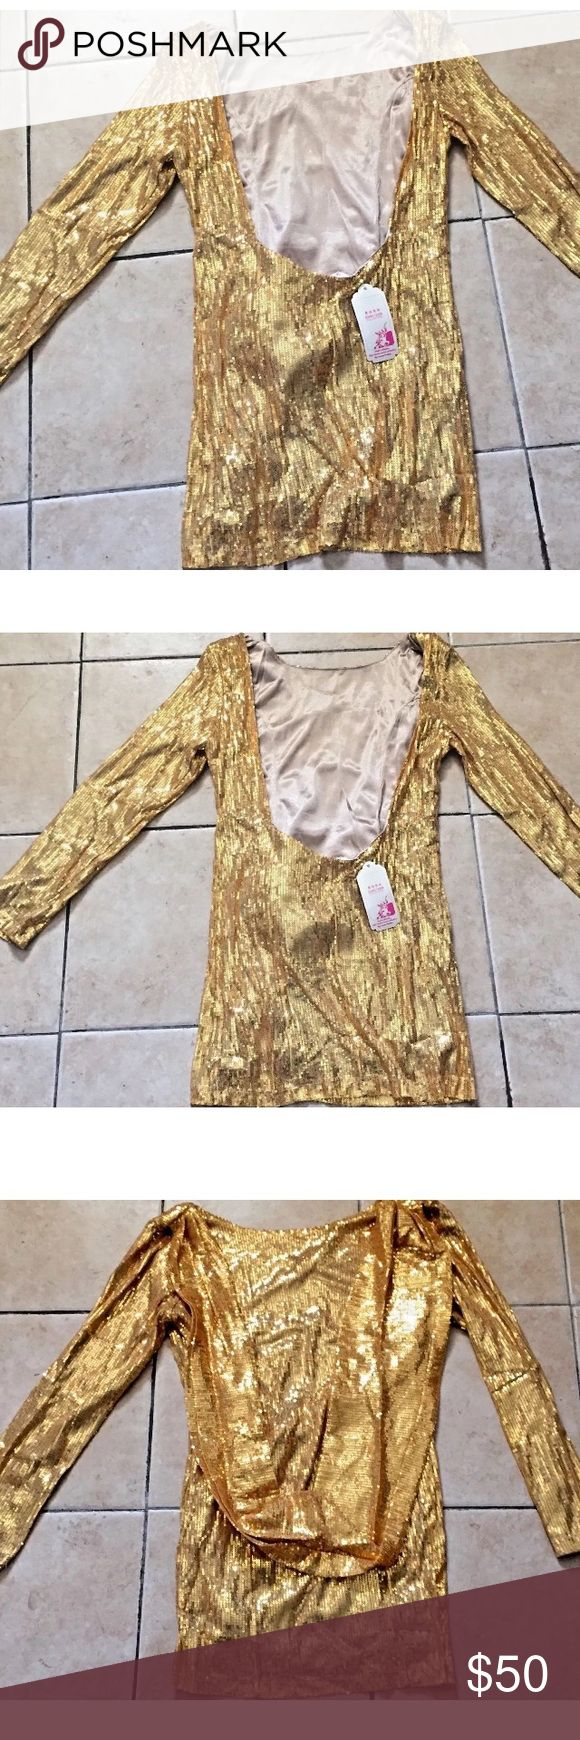 NWT Heraway Gold Women's Top Sz. L Beautiful top is great with jeans or a long skirt. Pet free smoke free home. Heraway Tops